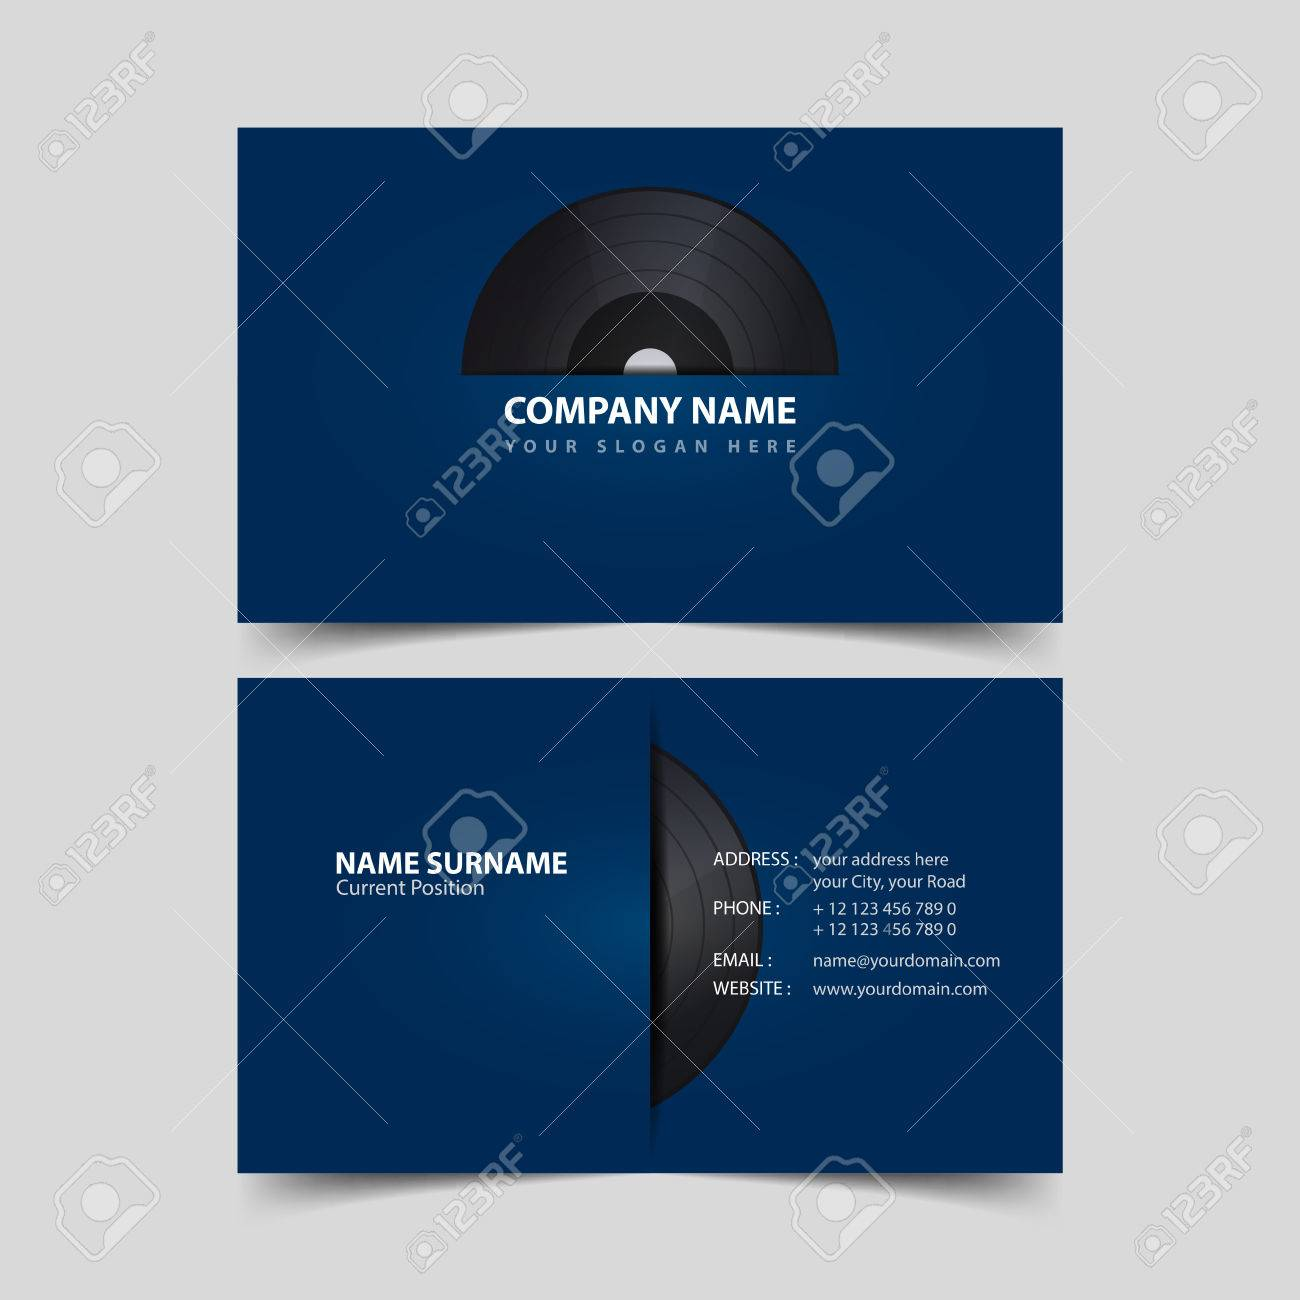 vinyl record business card design template royalty free cliparts